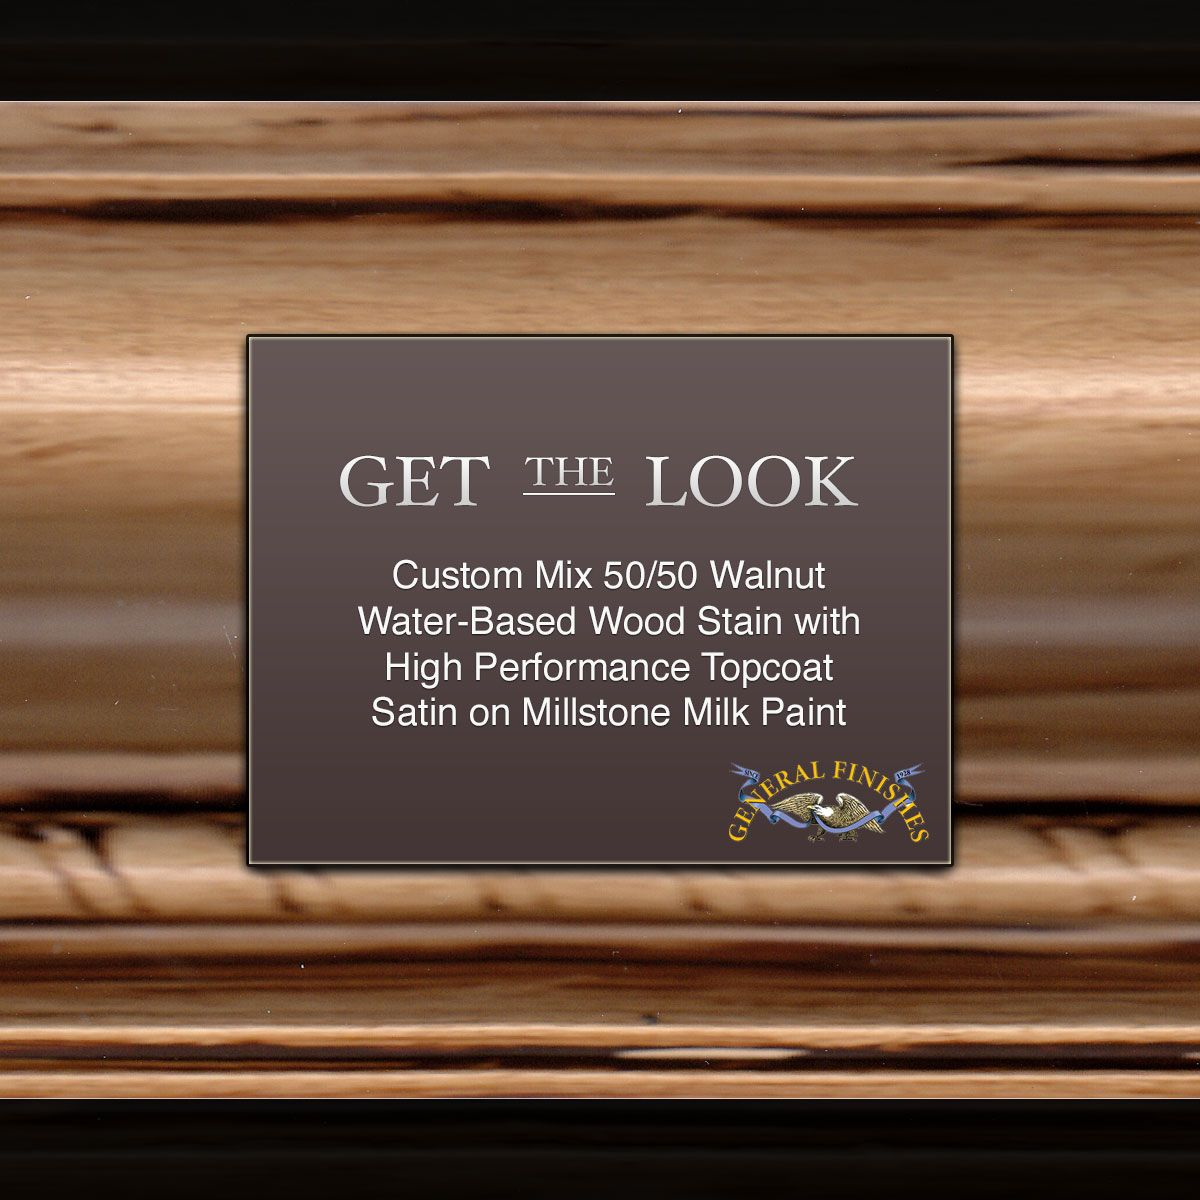 Millstone Walnut Hardwood Flooring: Pin By General Finishes On Get The Look